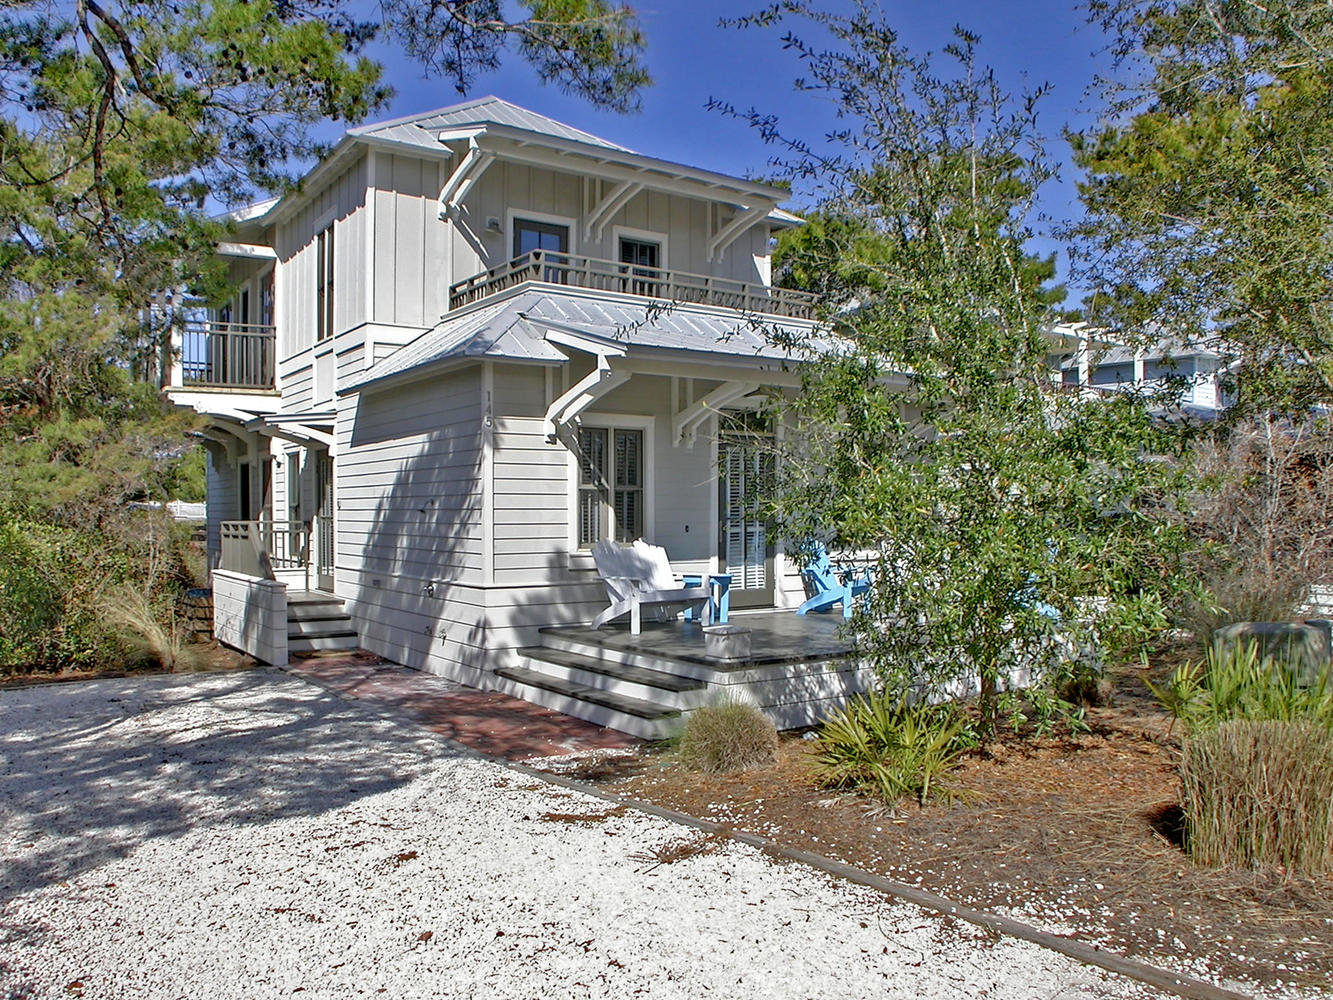 coast gulf rentals properties carriage cottage benoit both house fl for beach parking scenic rosemary rental garage vacation